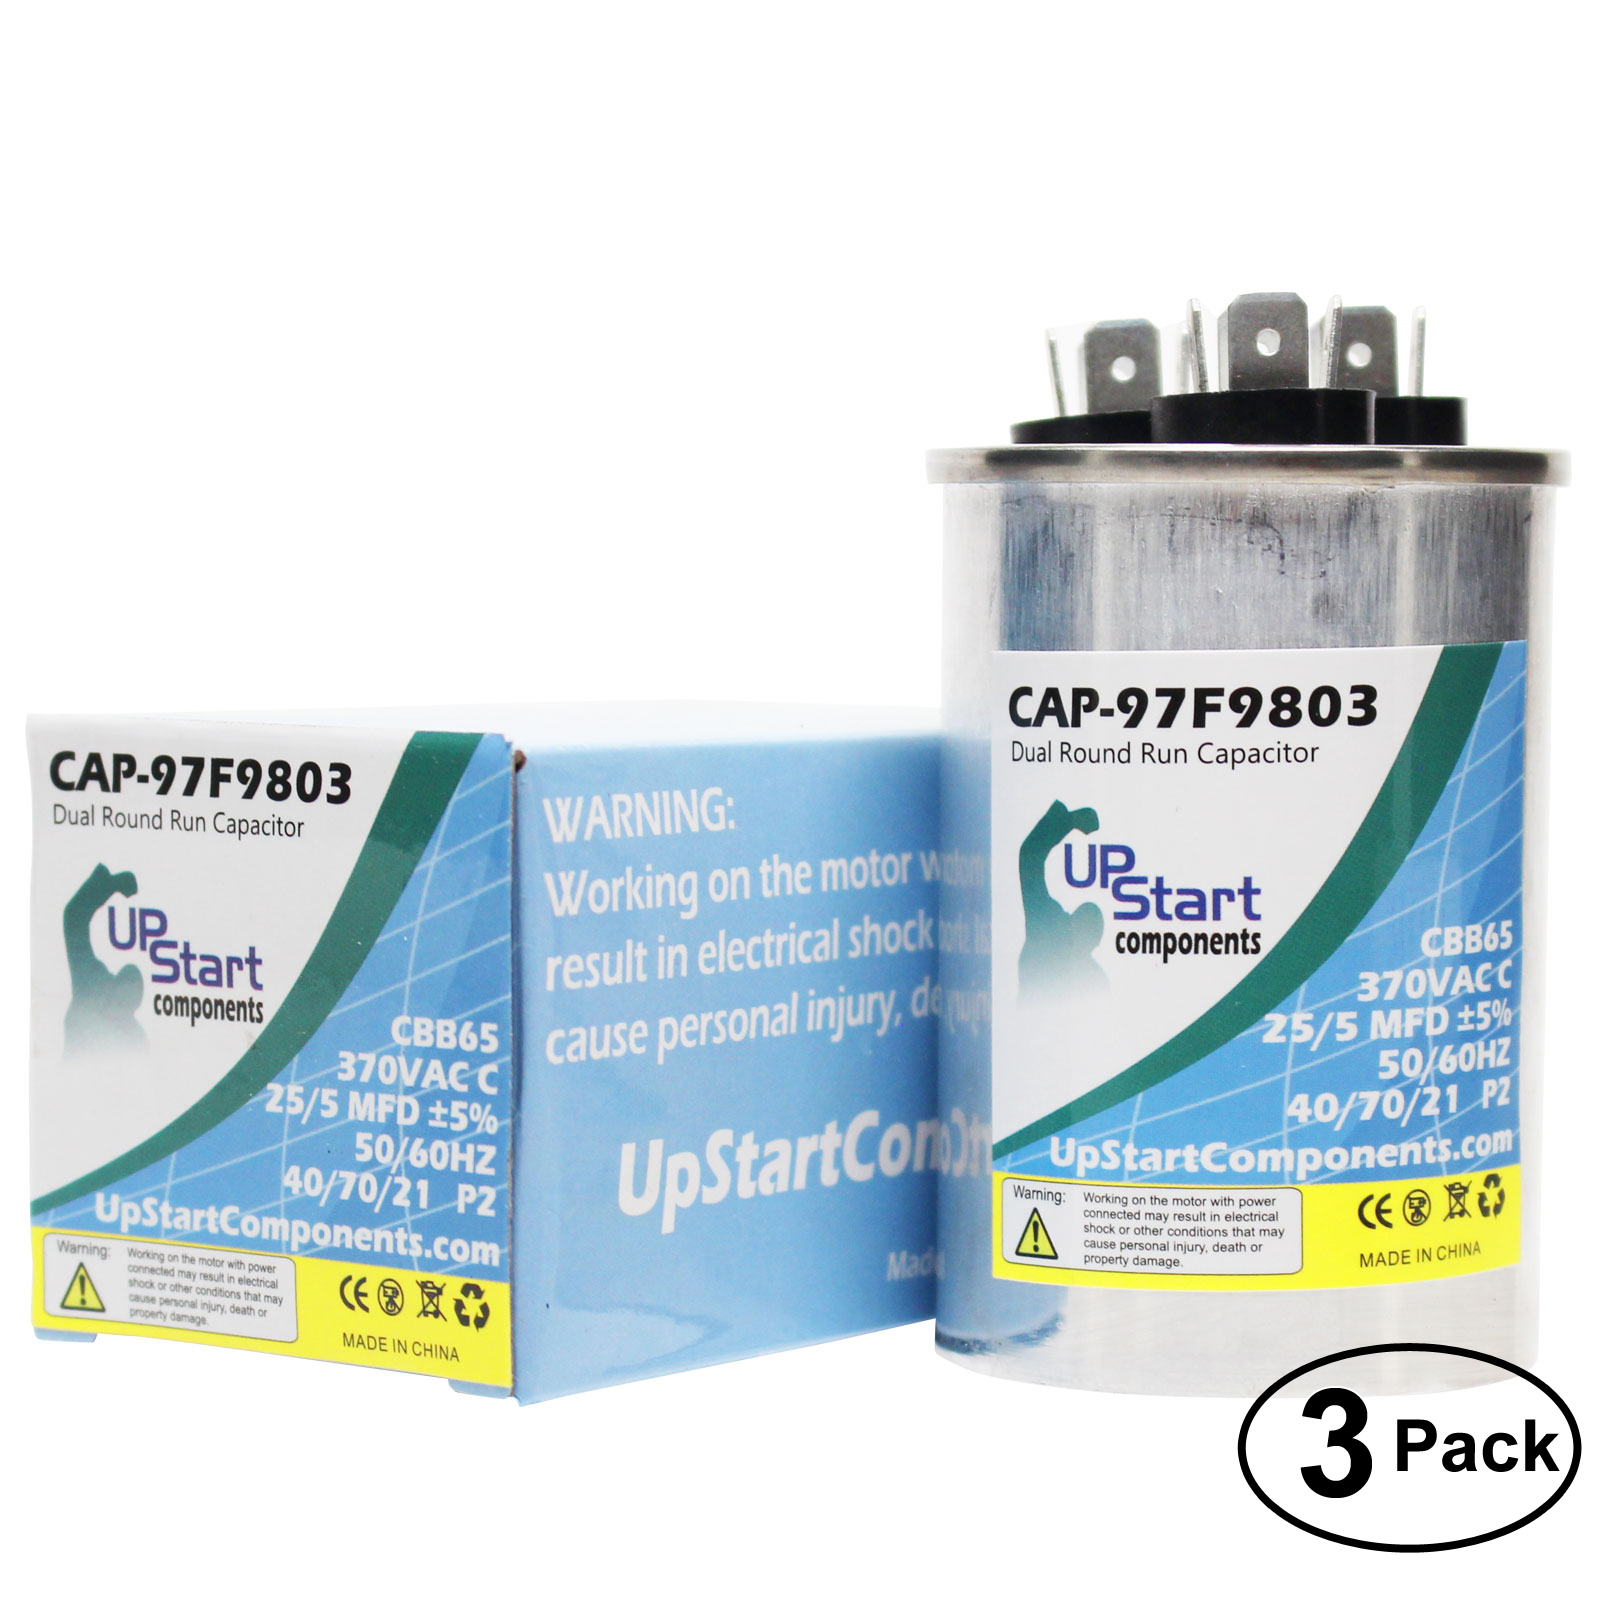 5x 25//5 MFD 370 Volt Dual Round Run Capacitor for Carrier 38AY0183000021